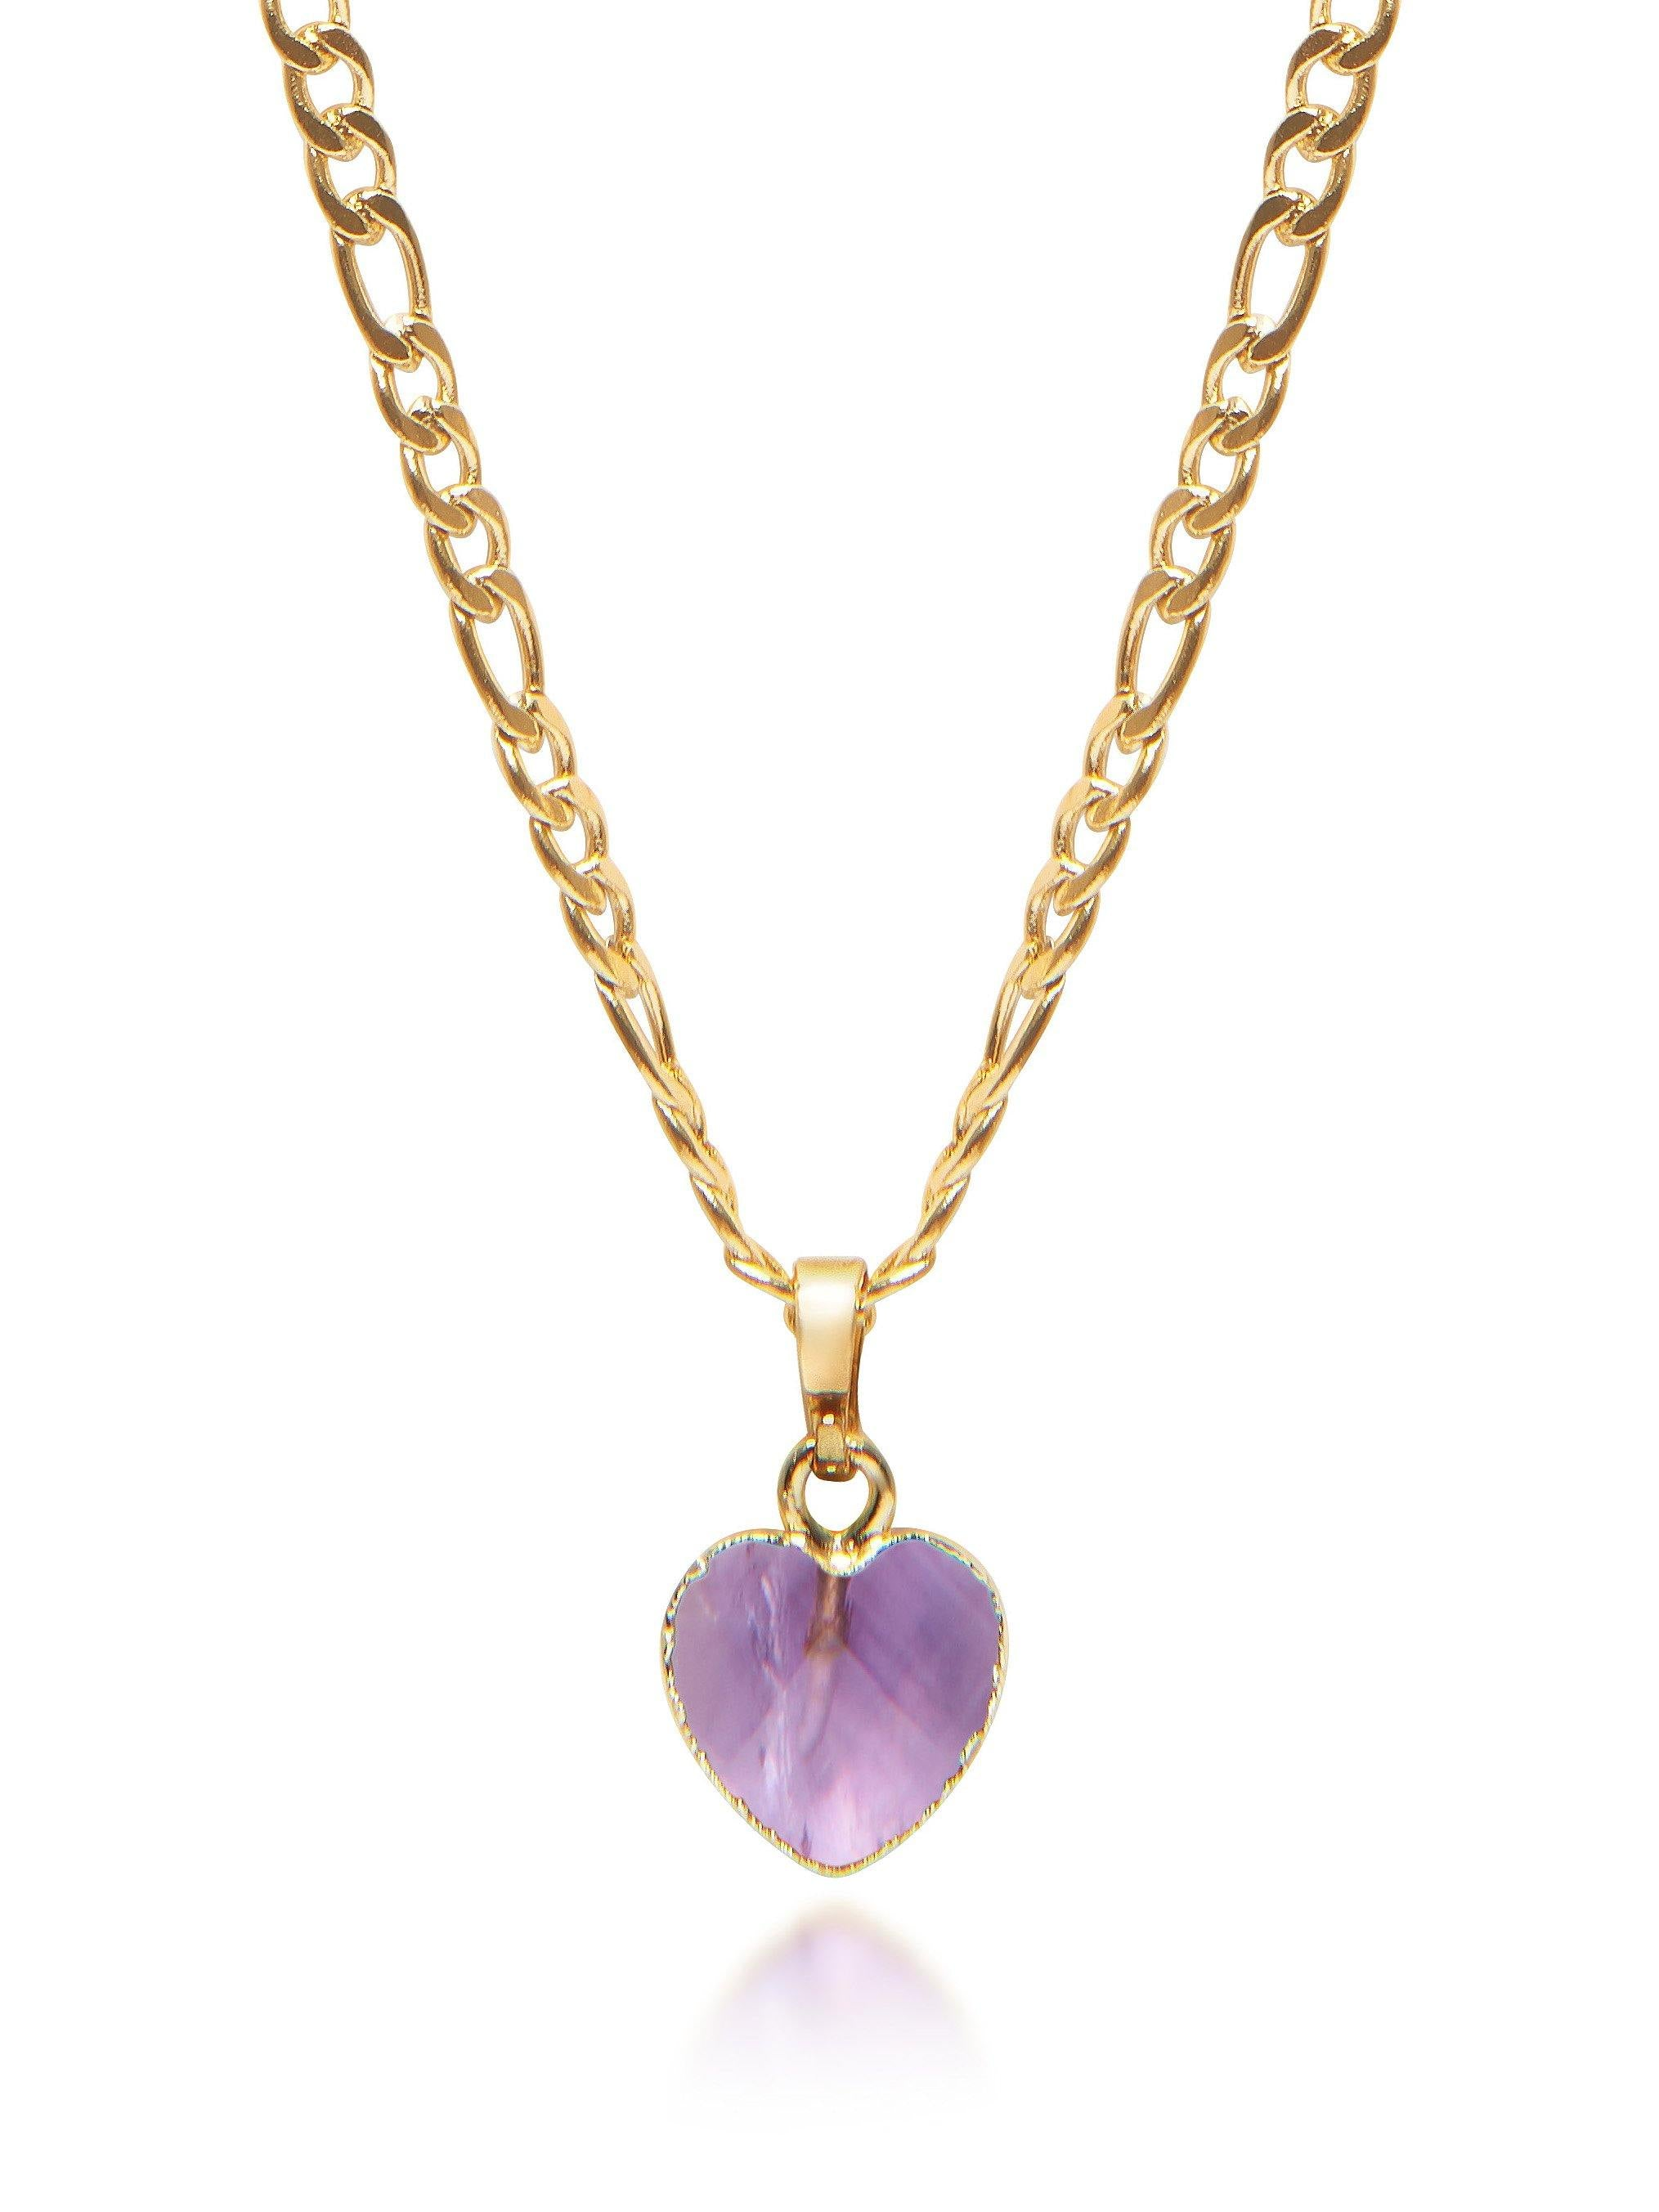 PRE-ORDER: Women's Amethyst Heart Necklace